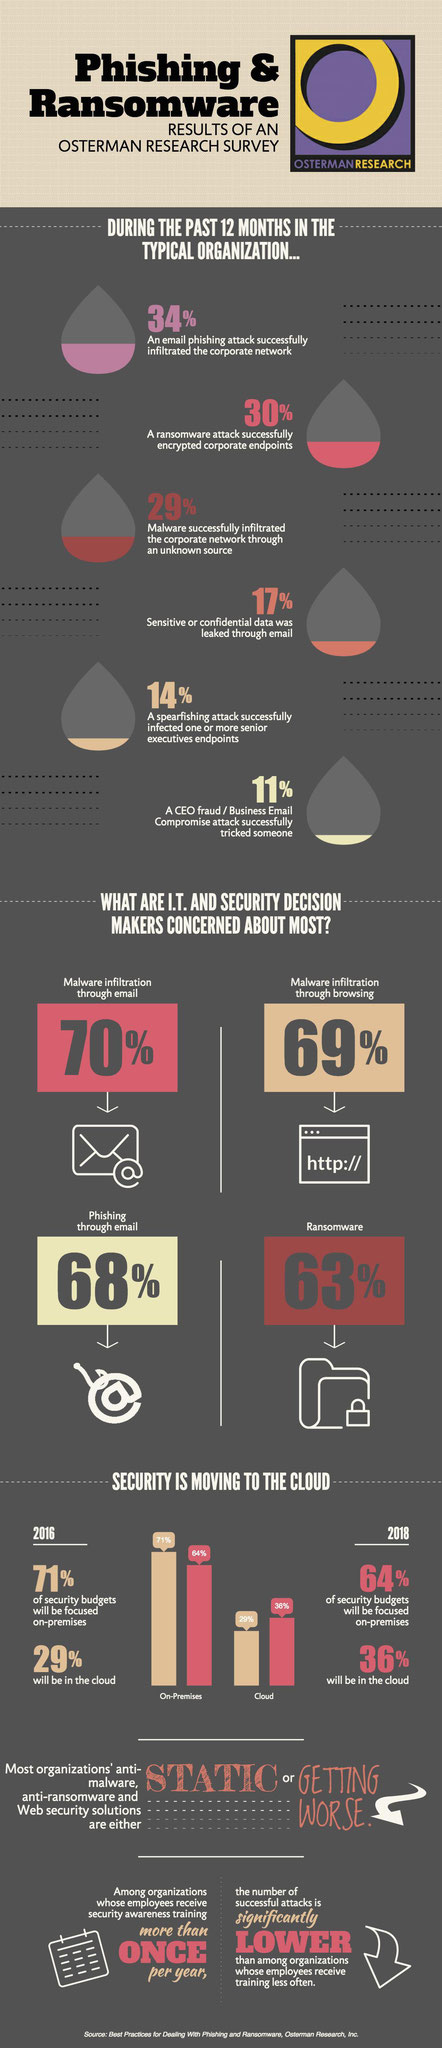 Phishing and Ransomware, 2016